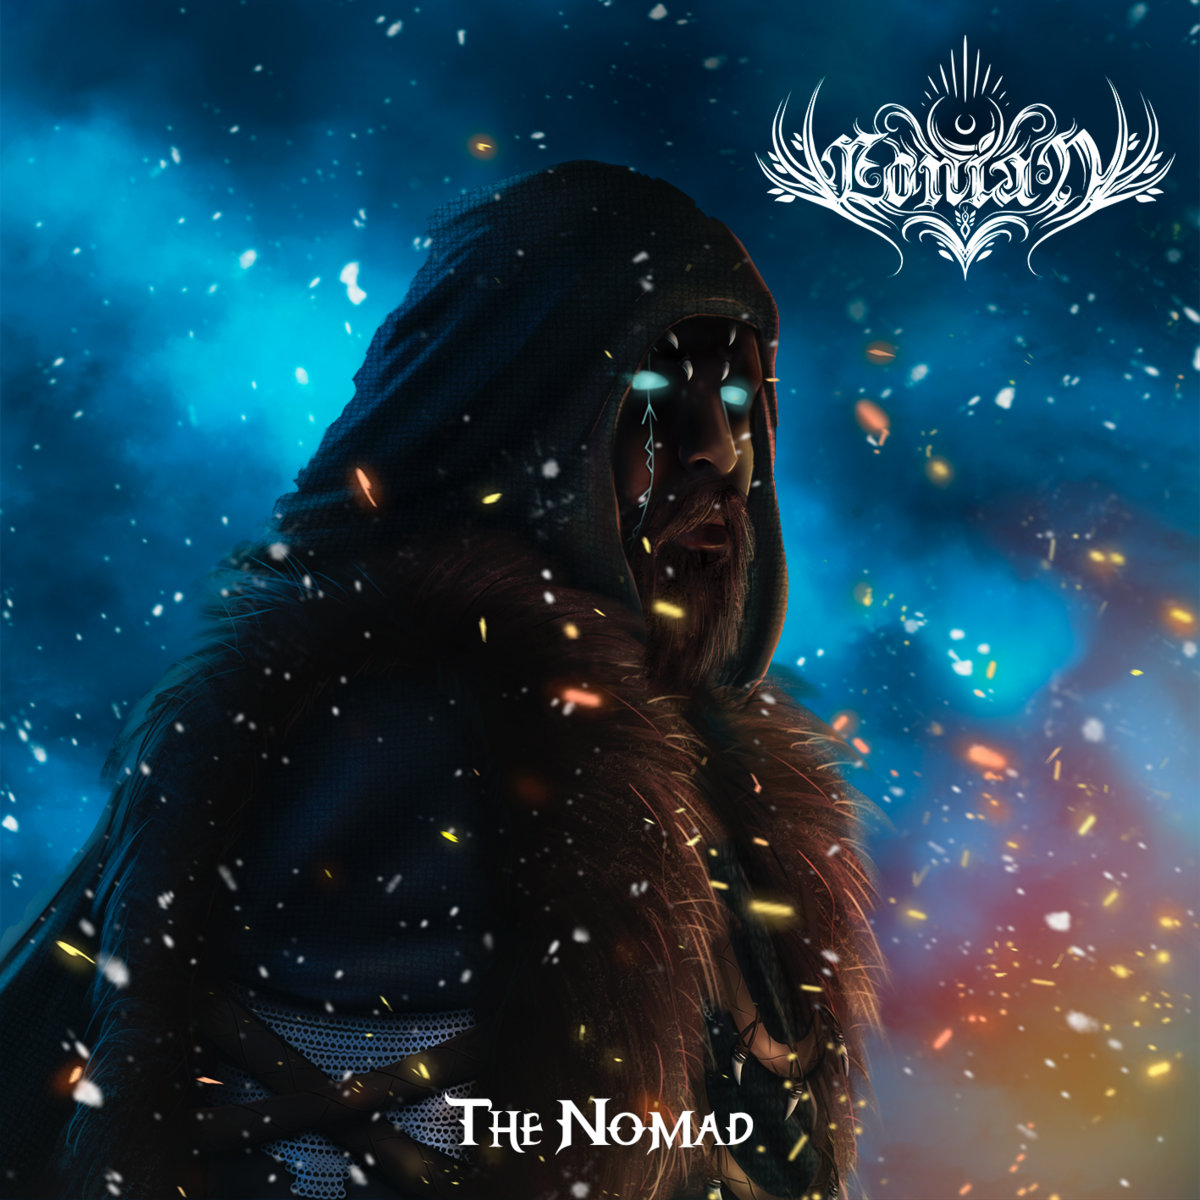 Eonian - The Nomad (2021)